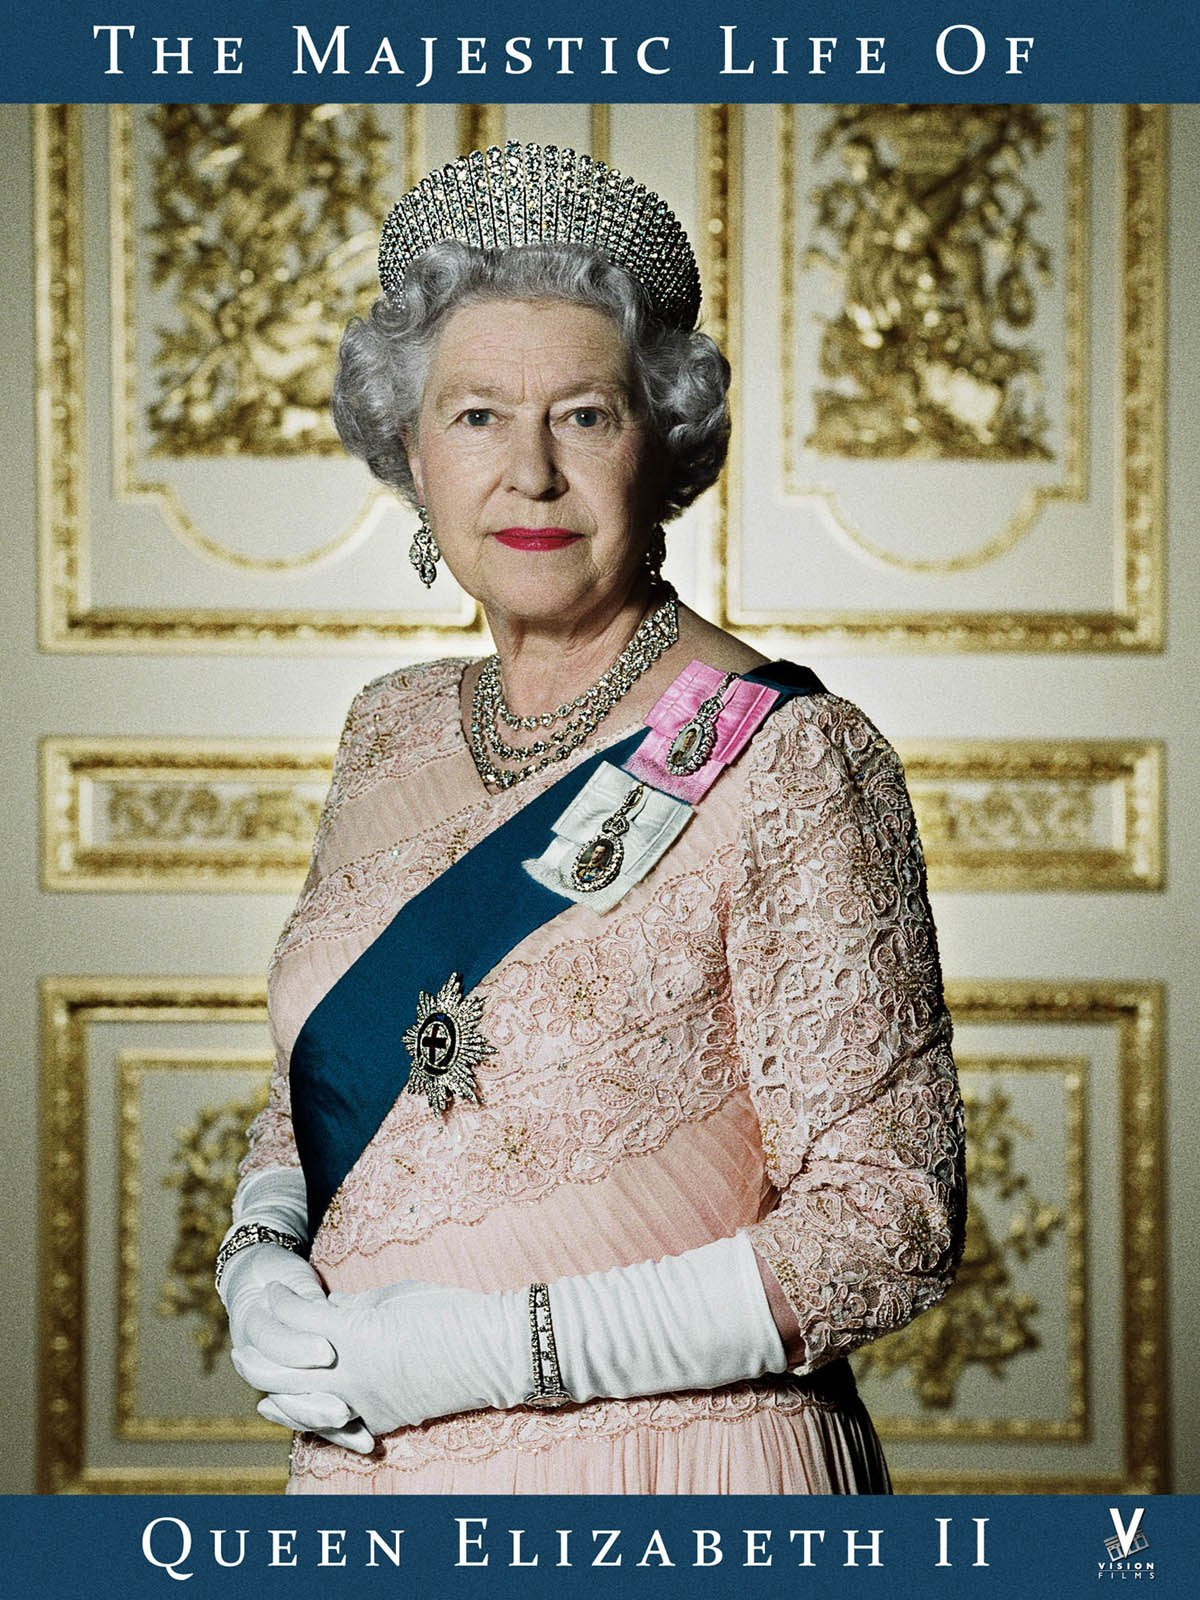 The Majestic Life of Queen Elizabeth II